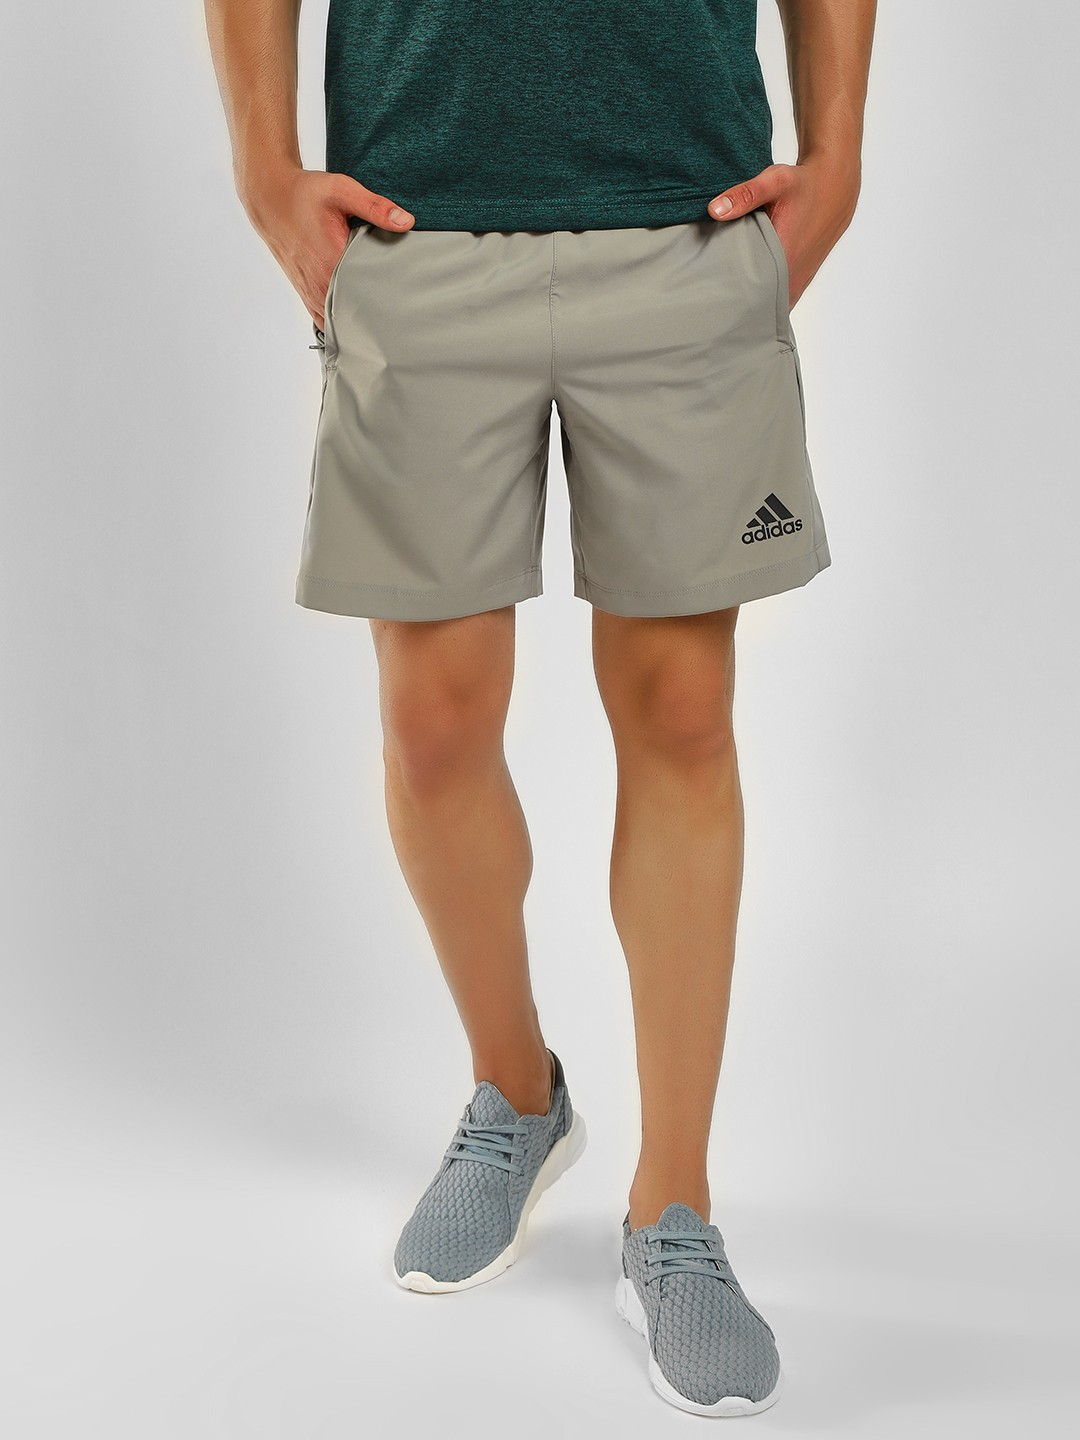 Adidas Green Casual Shorts 1